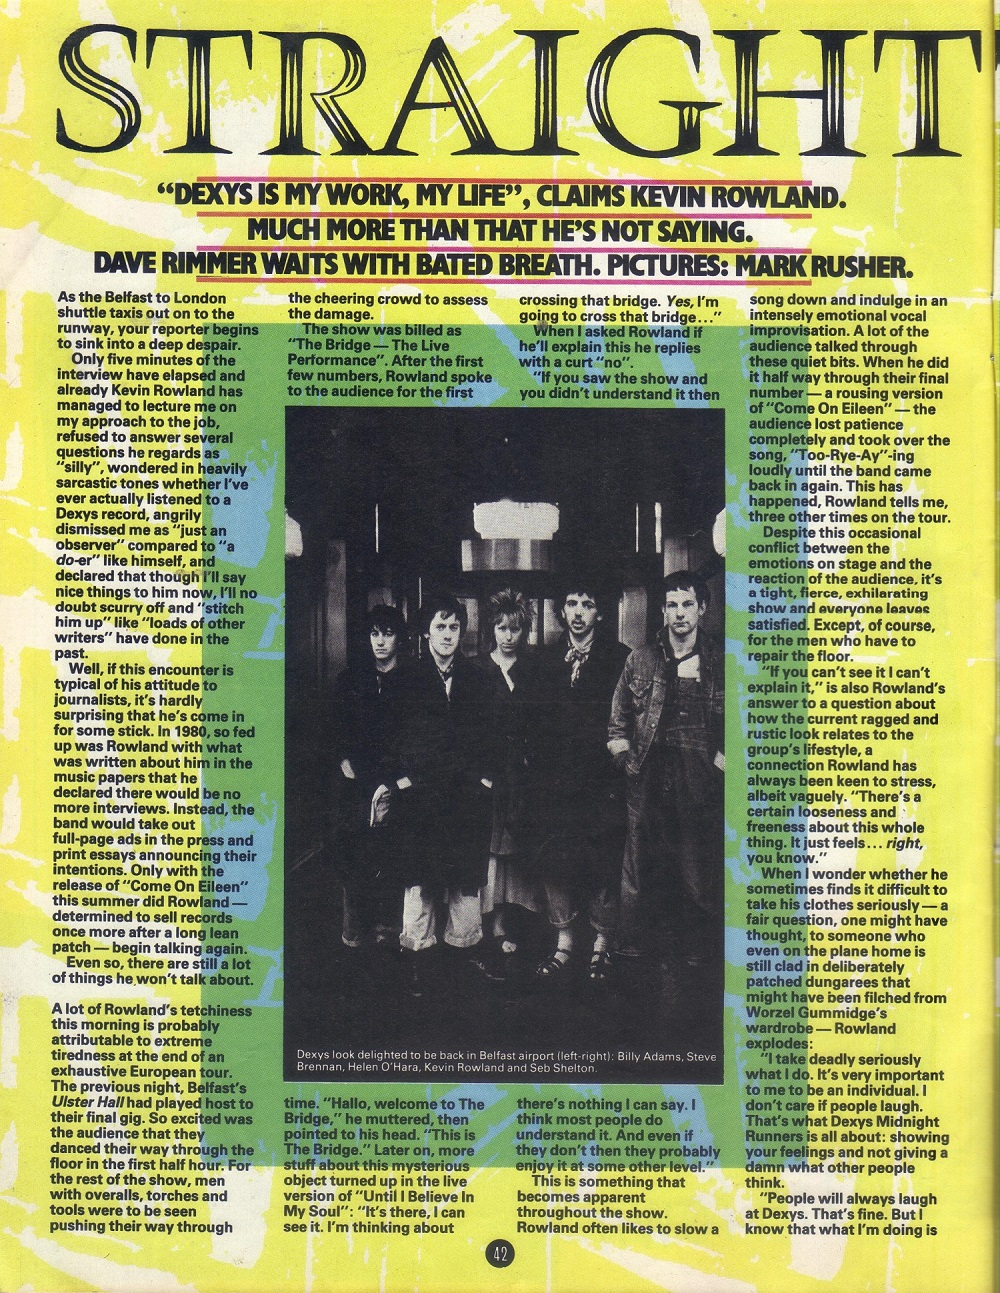 Smash_Hits_Interview_Part_One_09_12_82.jpg